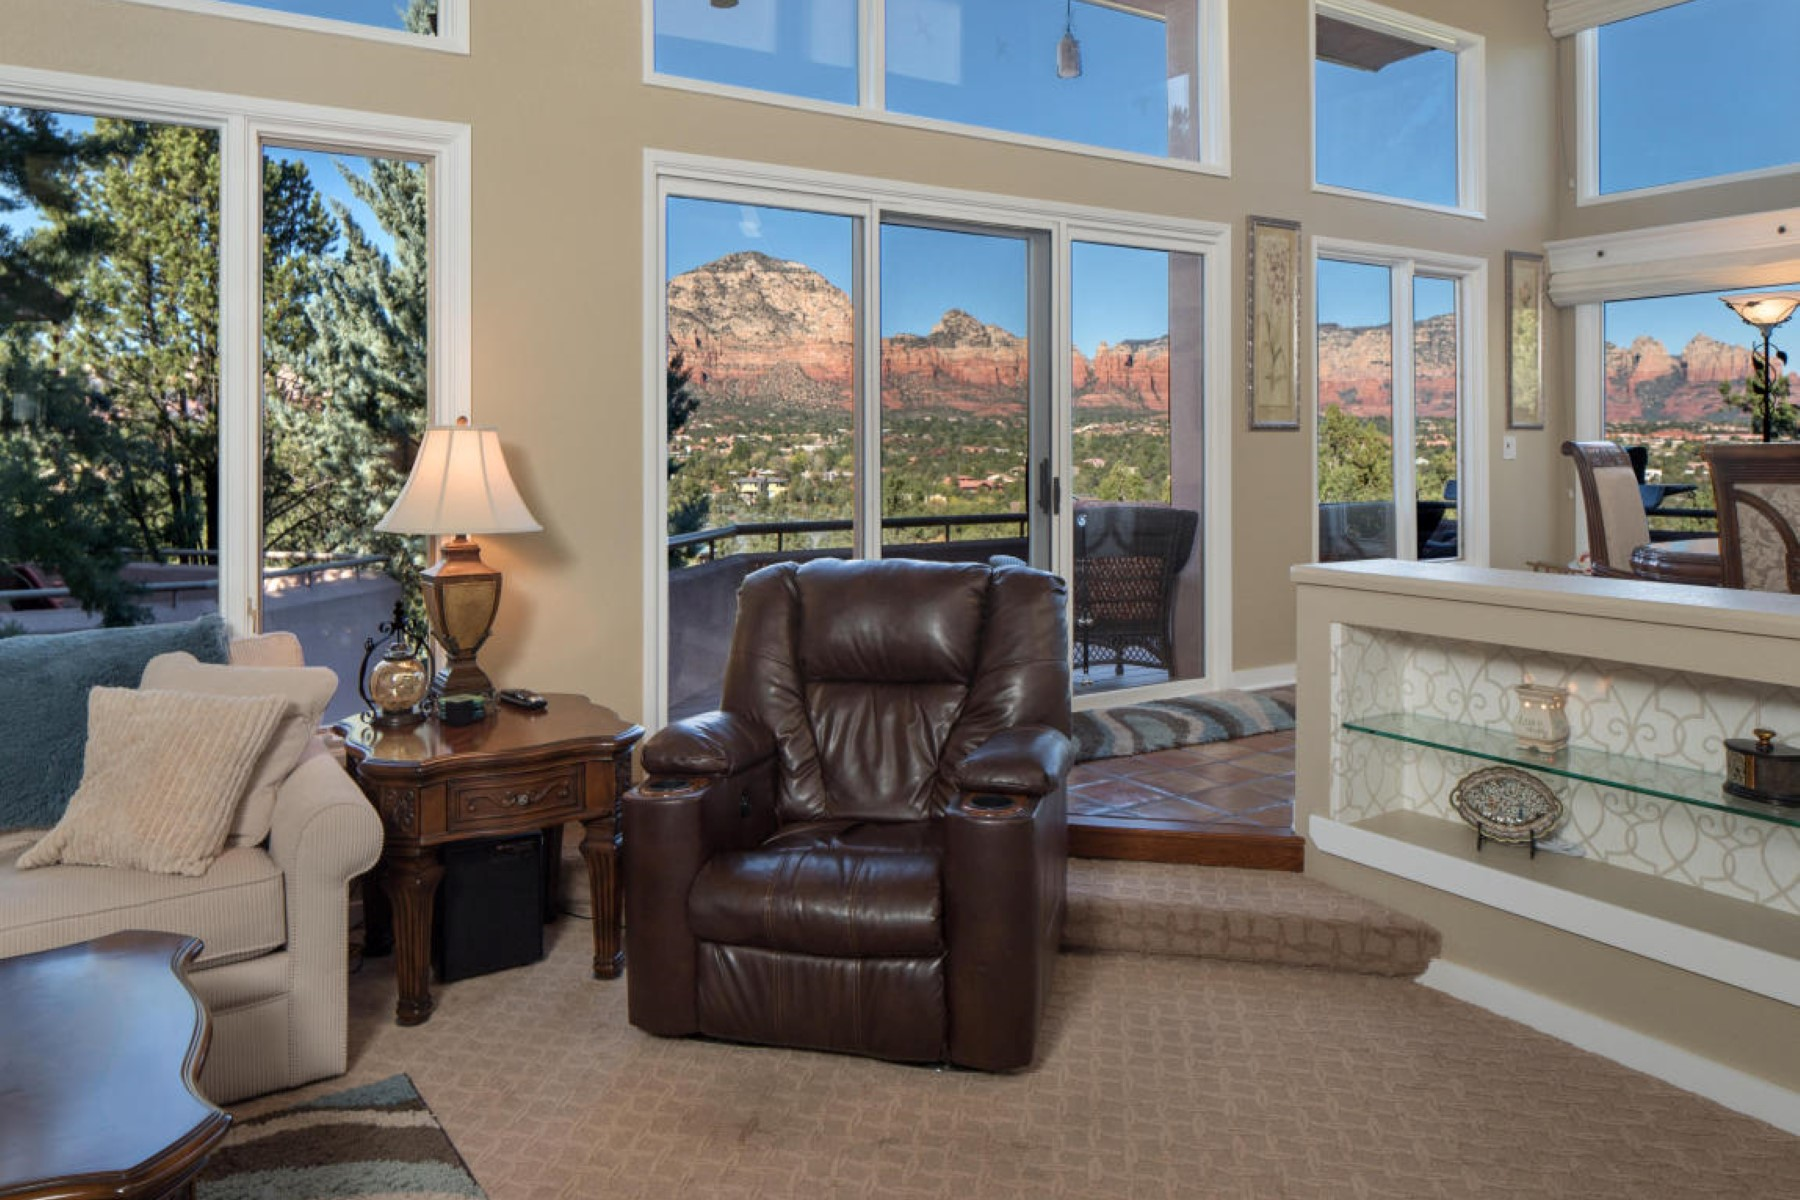 Single Family Home for Sale at Stunning three bedroom Sedona home 240 Racquet Rd Sedona, Arizona, 86336 United States